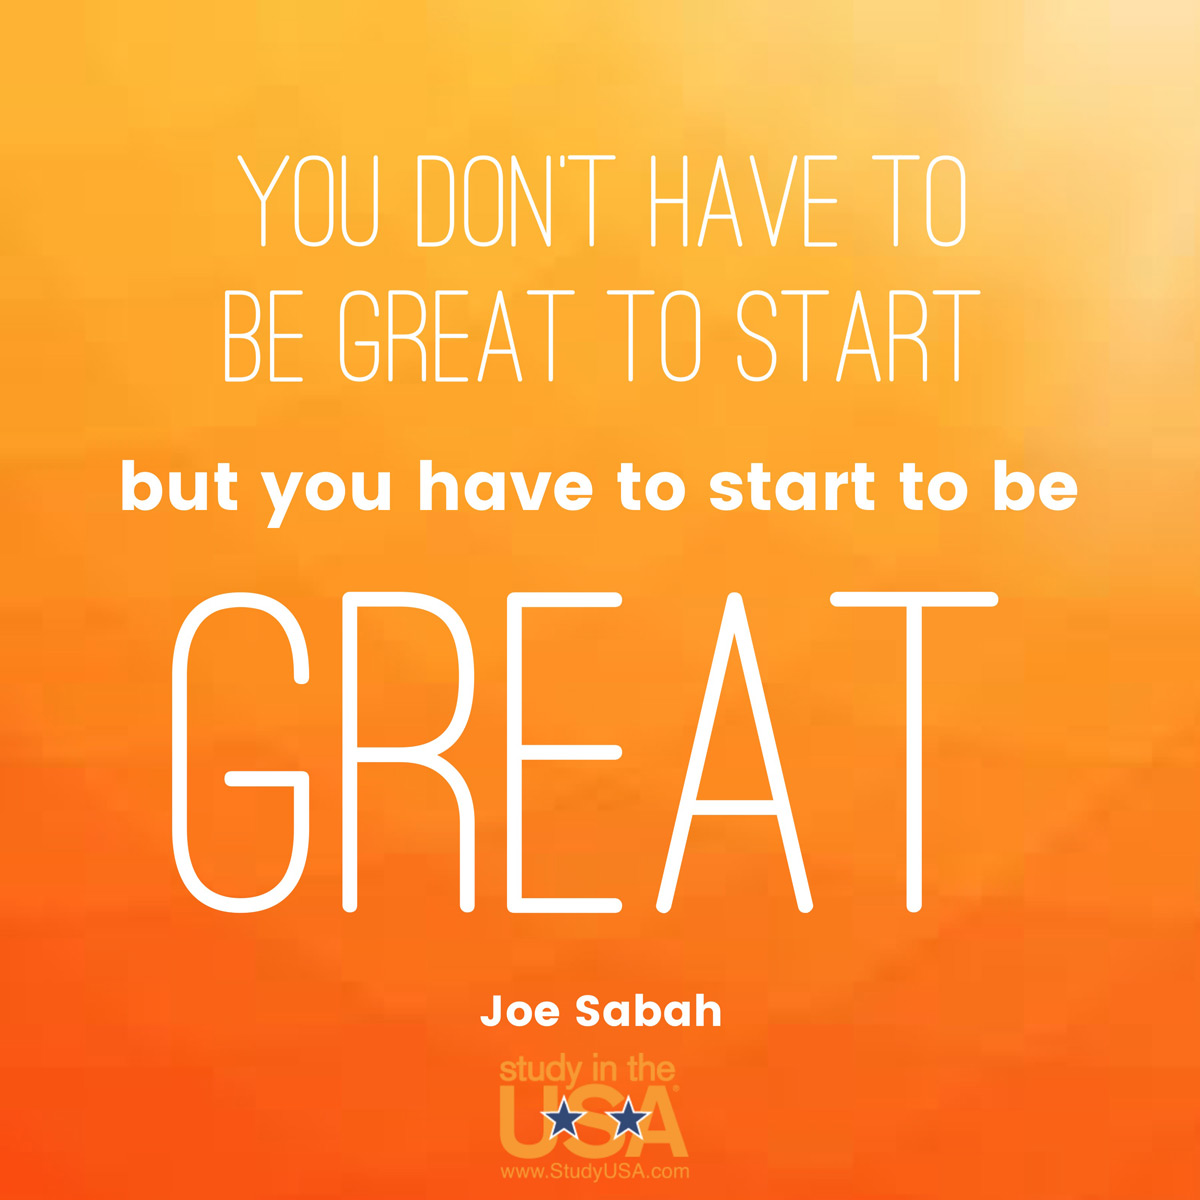 Blog post image for Monday Quote by Joe Sabah